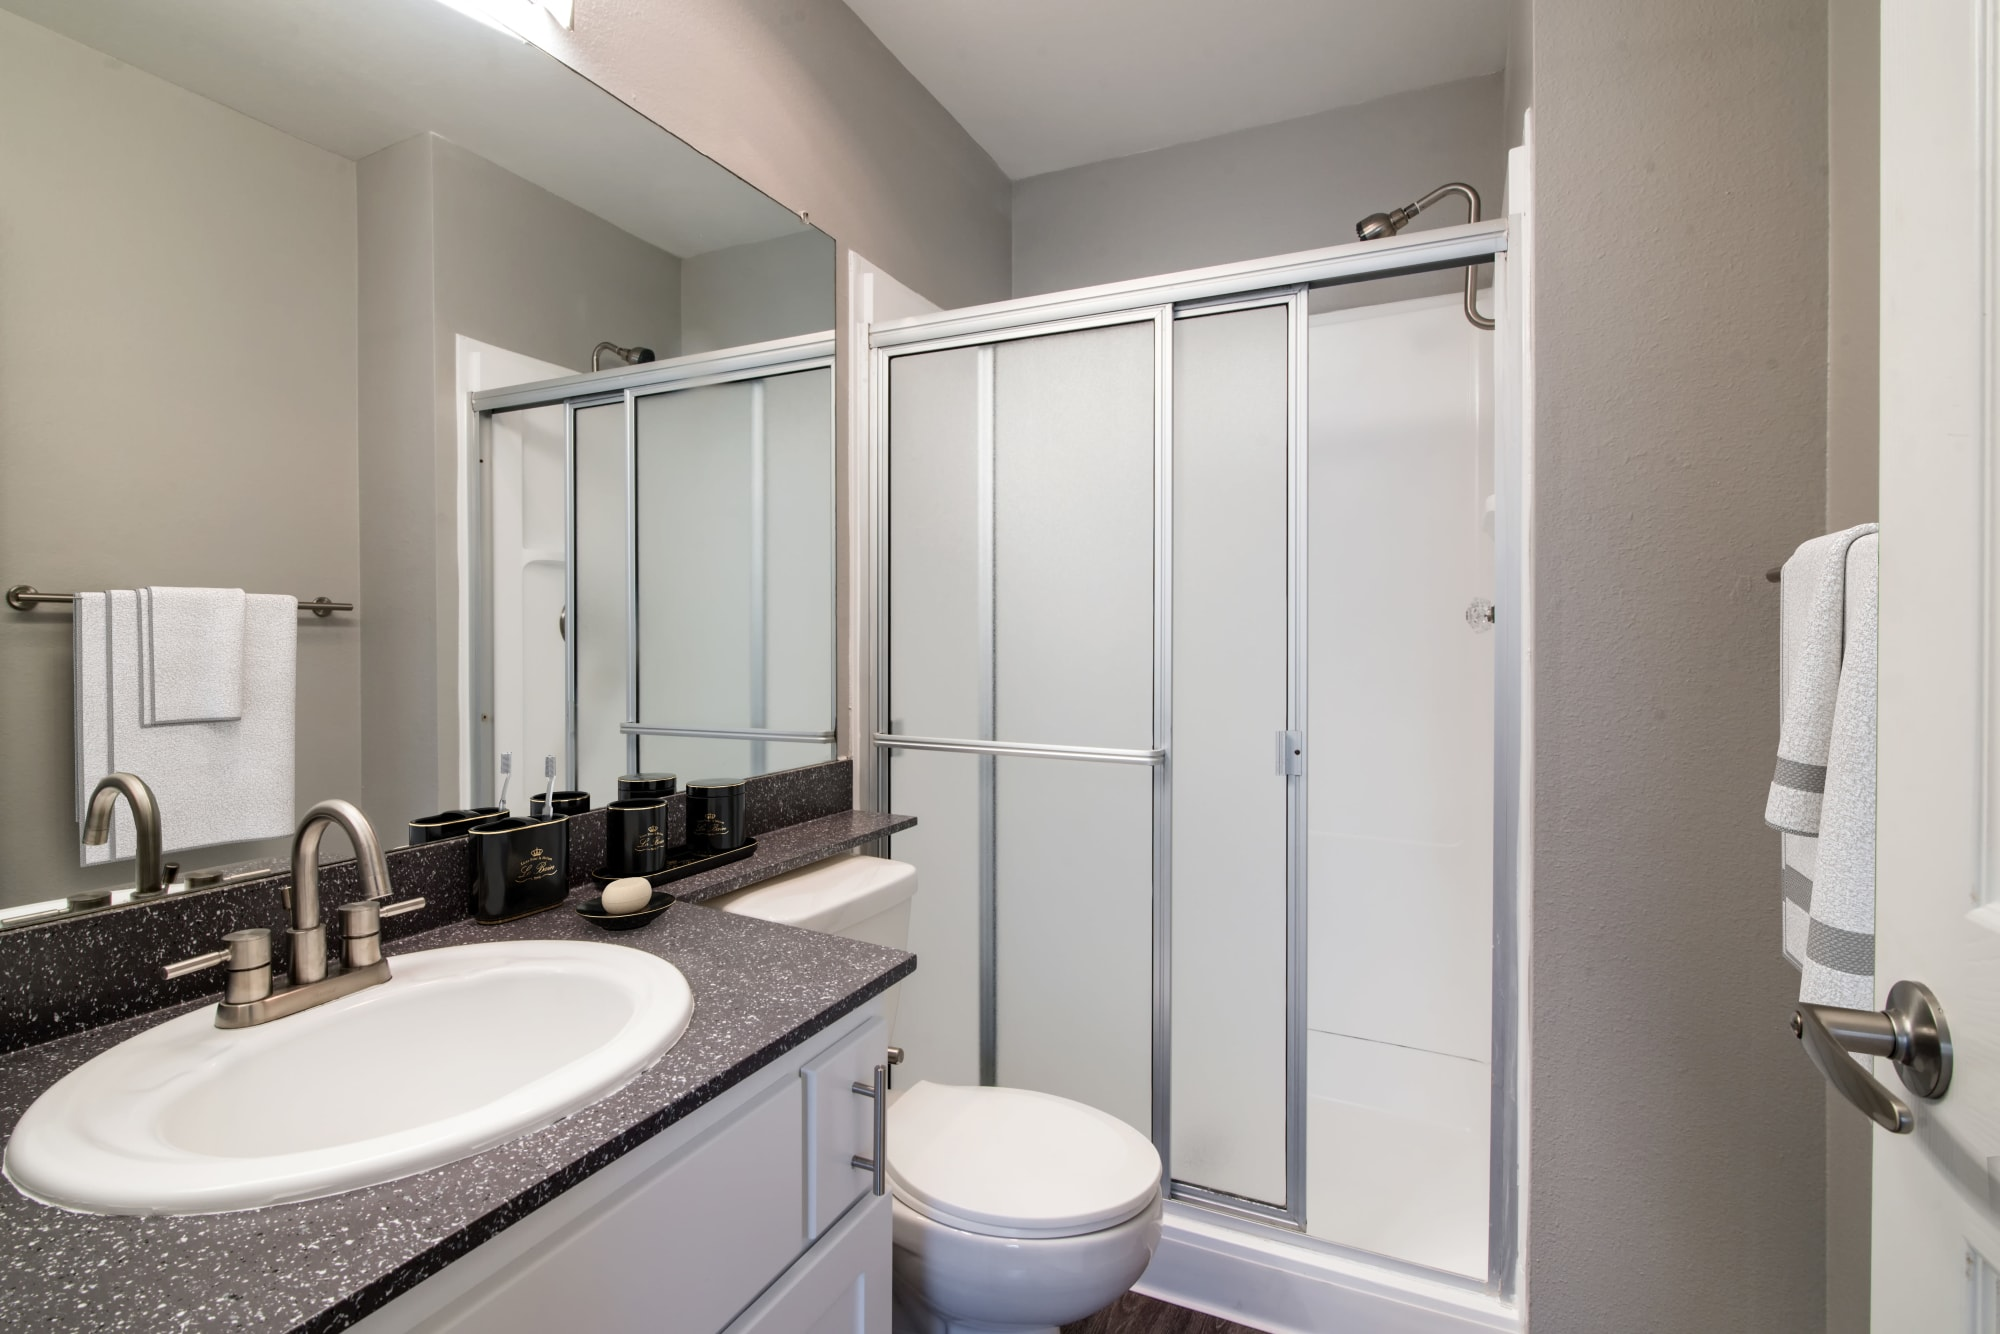 A renovated bathroom with white cabinets at Lakeview Village Apartments in Spring Valley, California